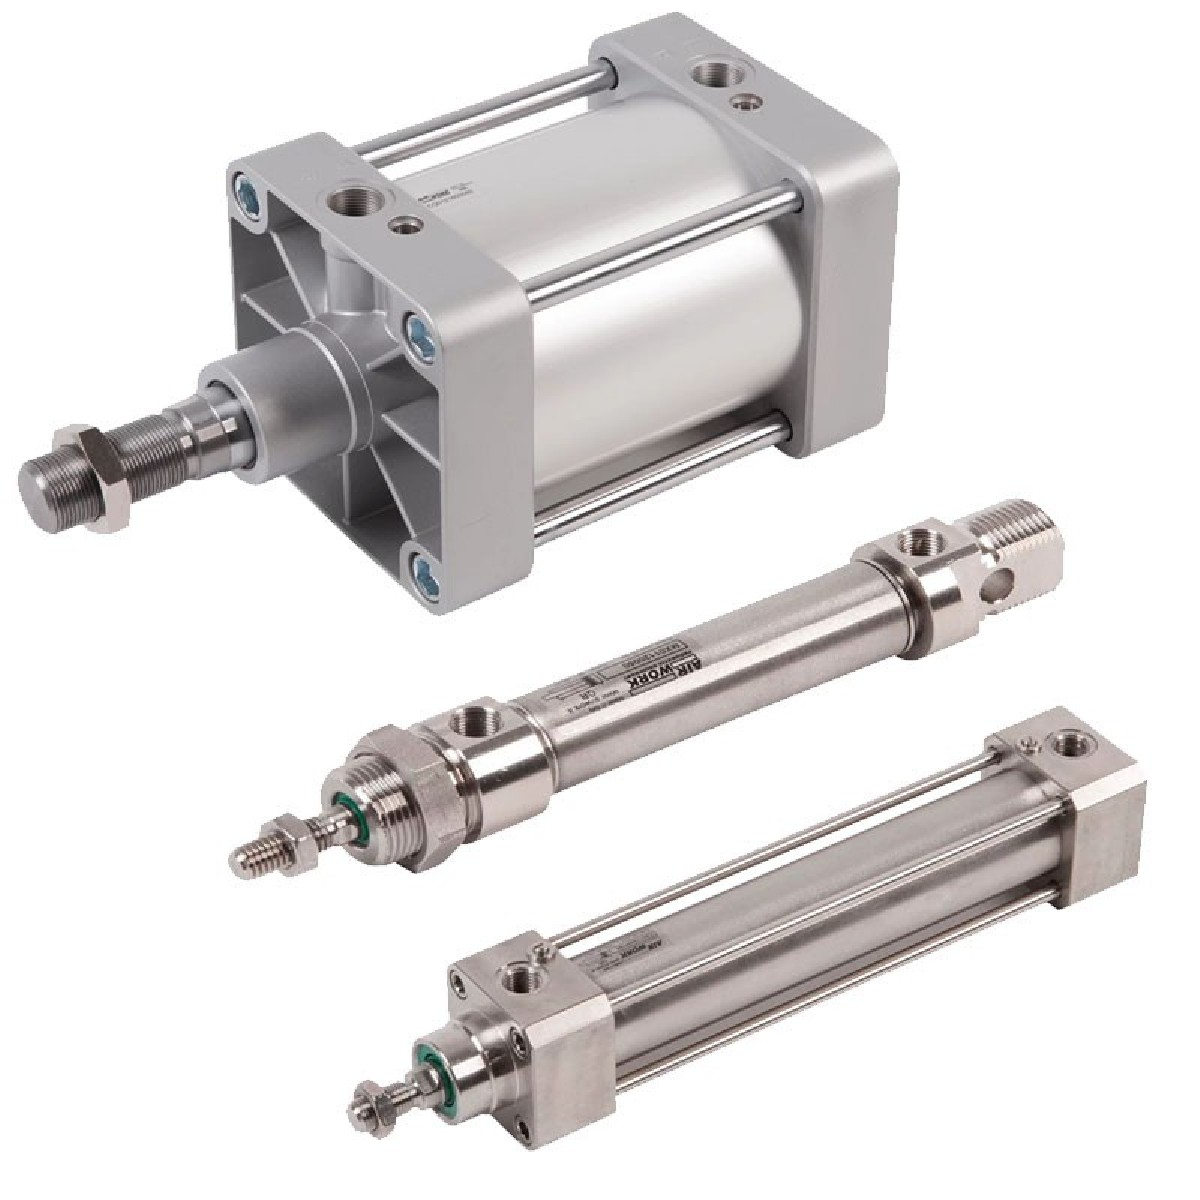 Pneumatic Cylinders and Accessories